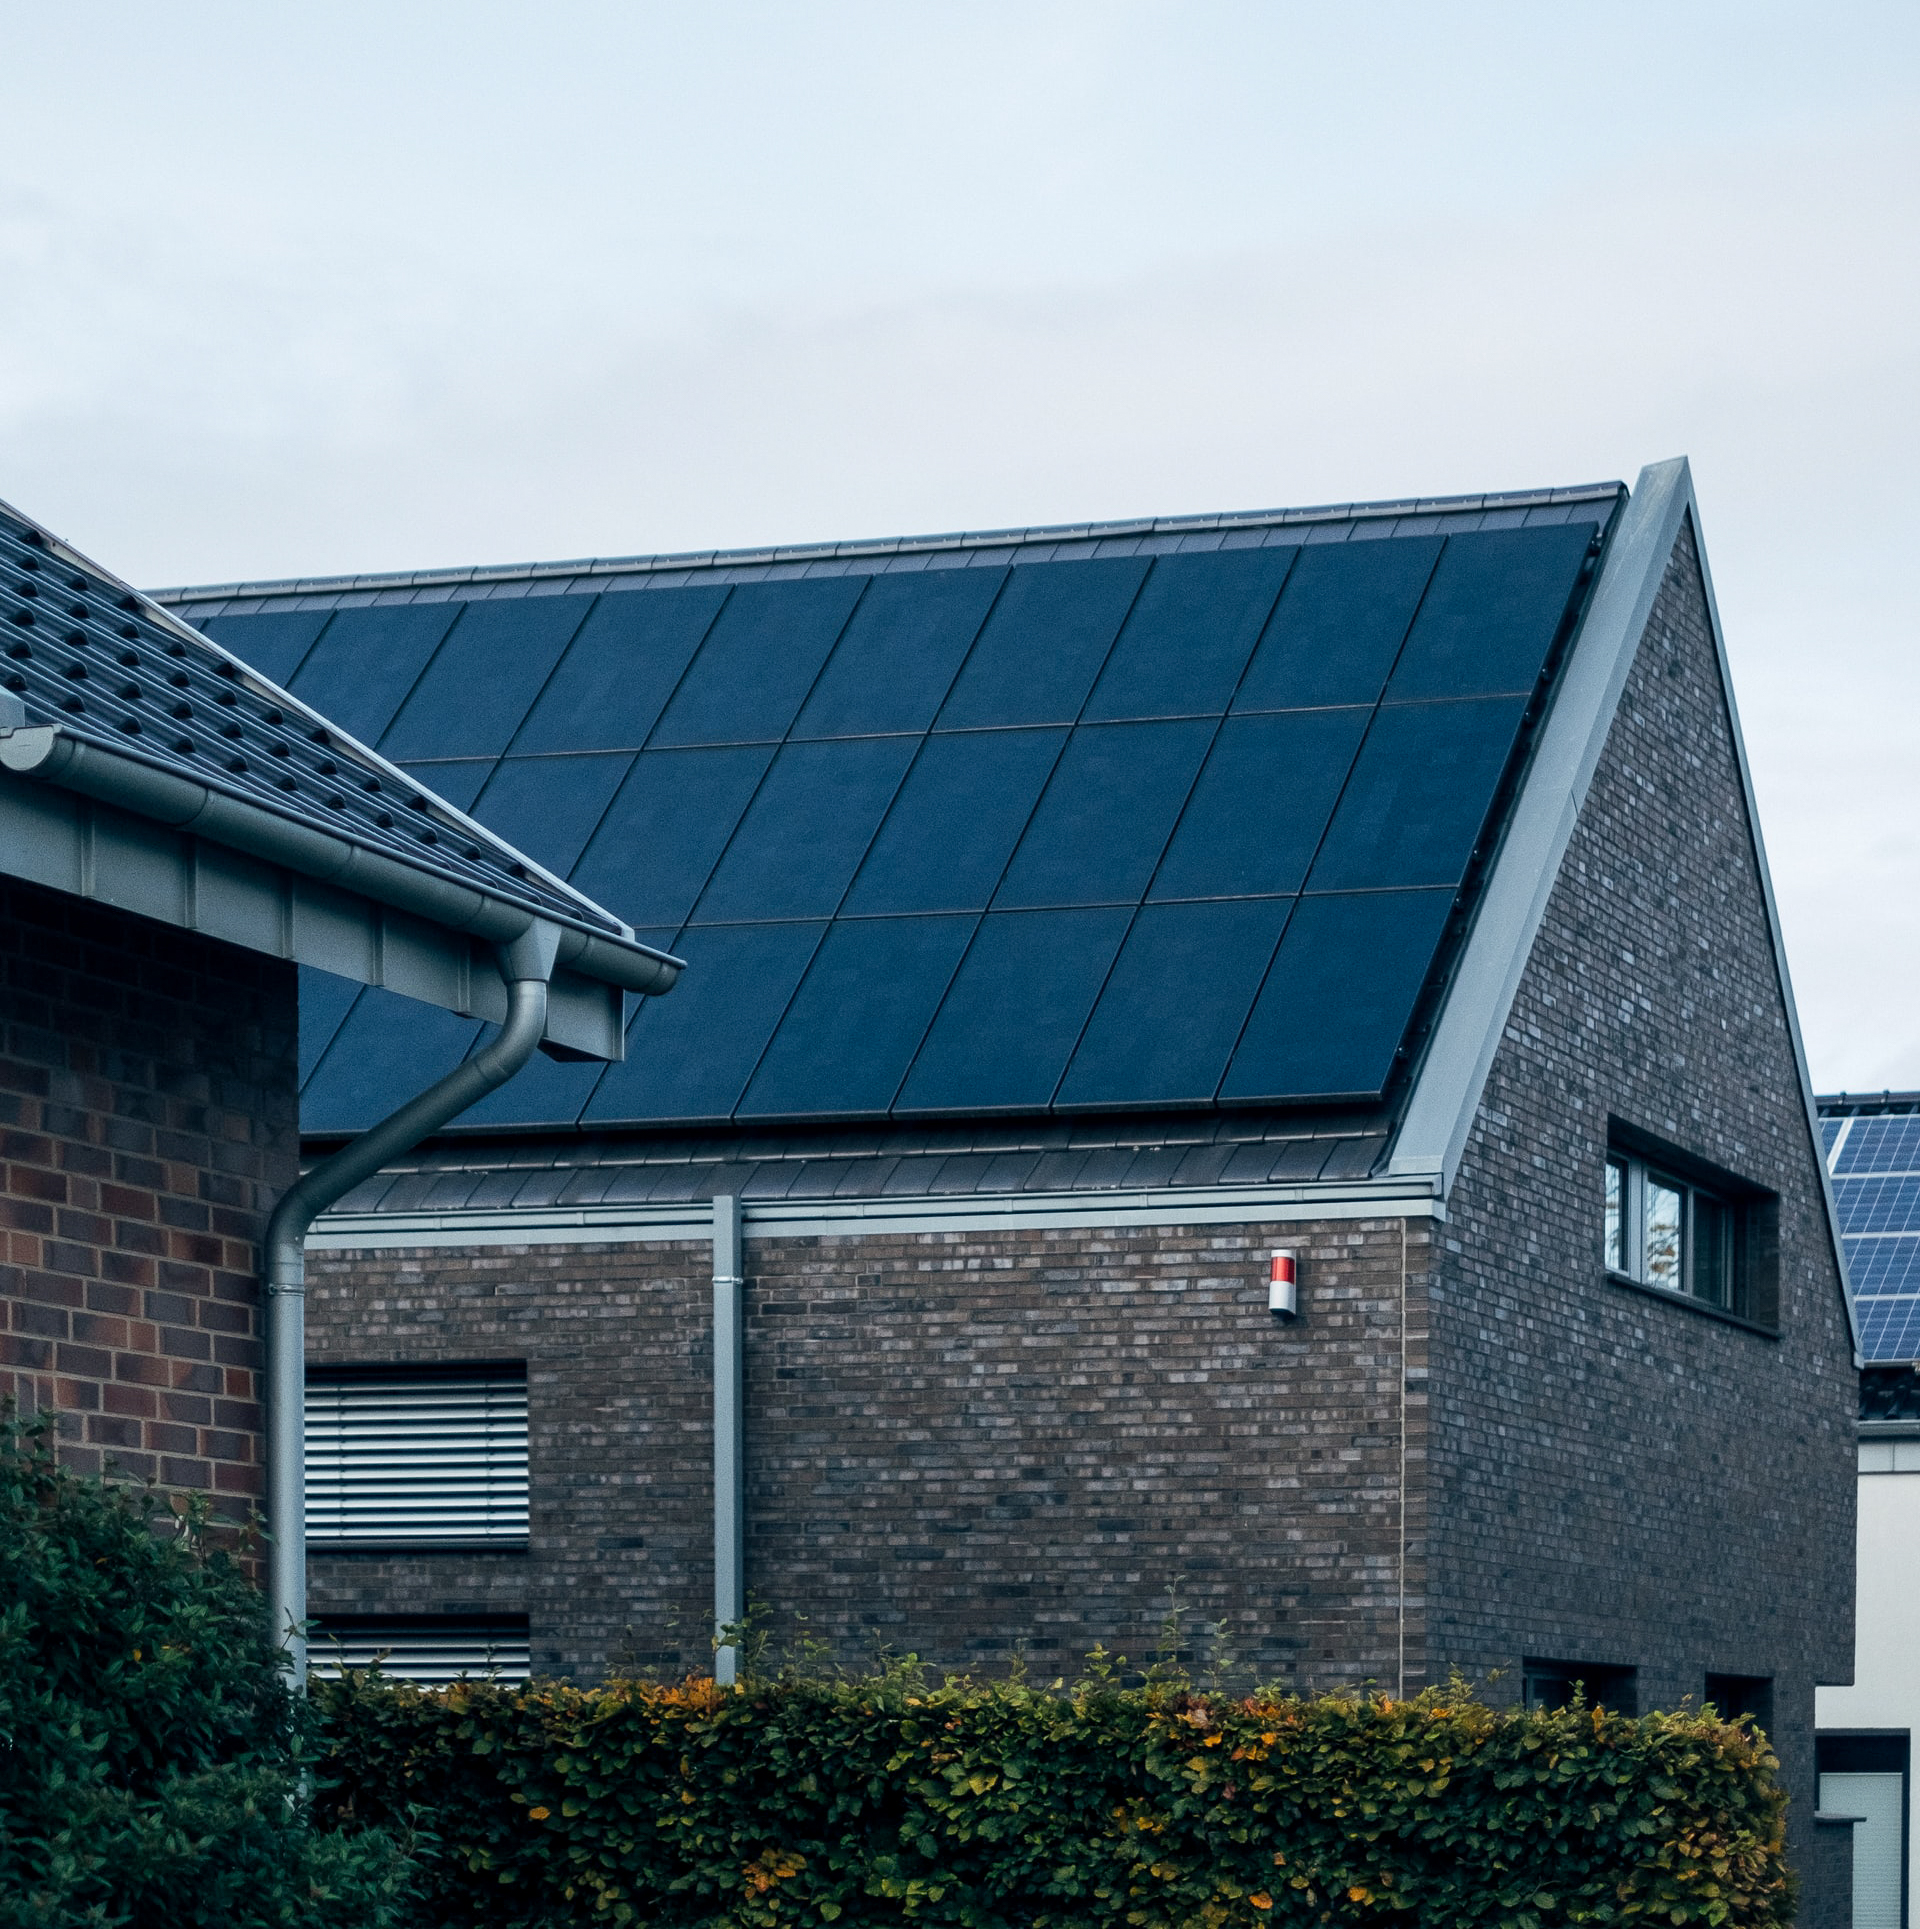 Will Solar increase the value of my home? Read our blog to find out!